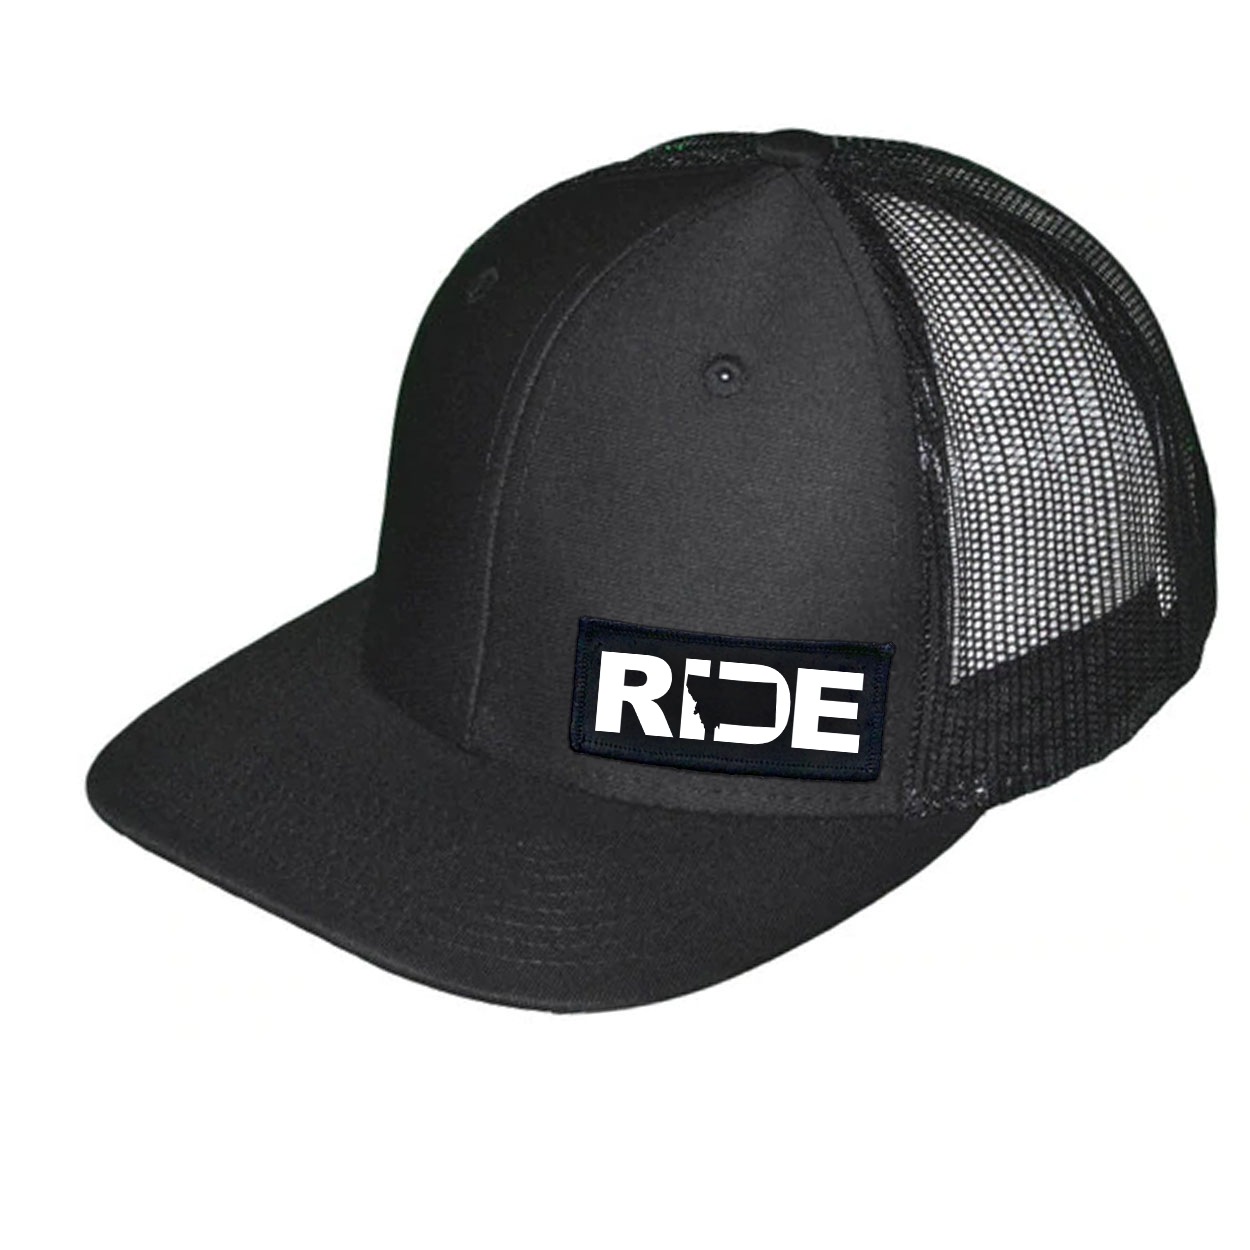 Ride Montana Night Out Woven Patch Snapback Trucker Hat Black (White Logo)